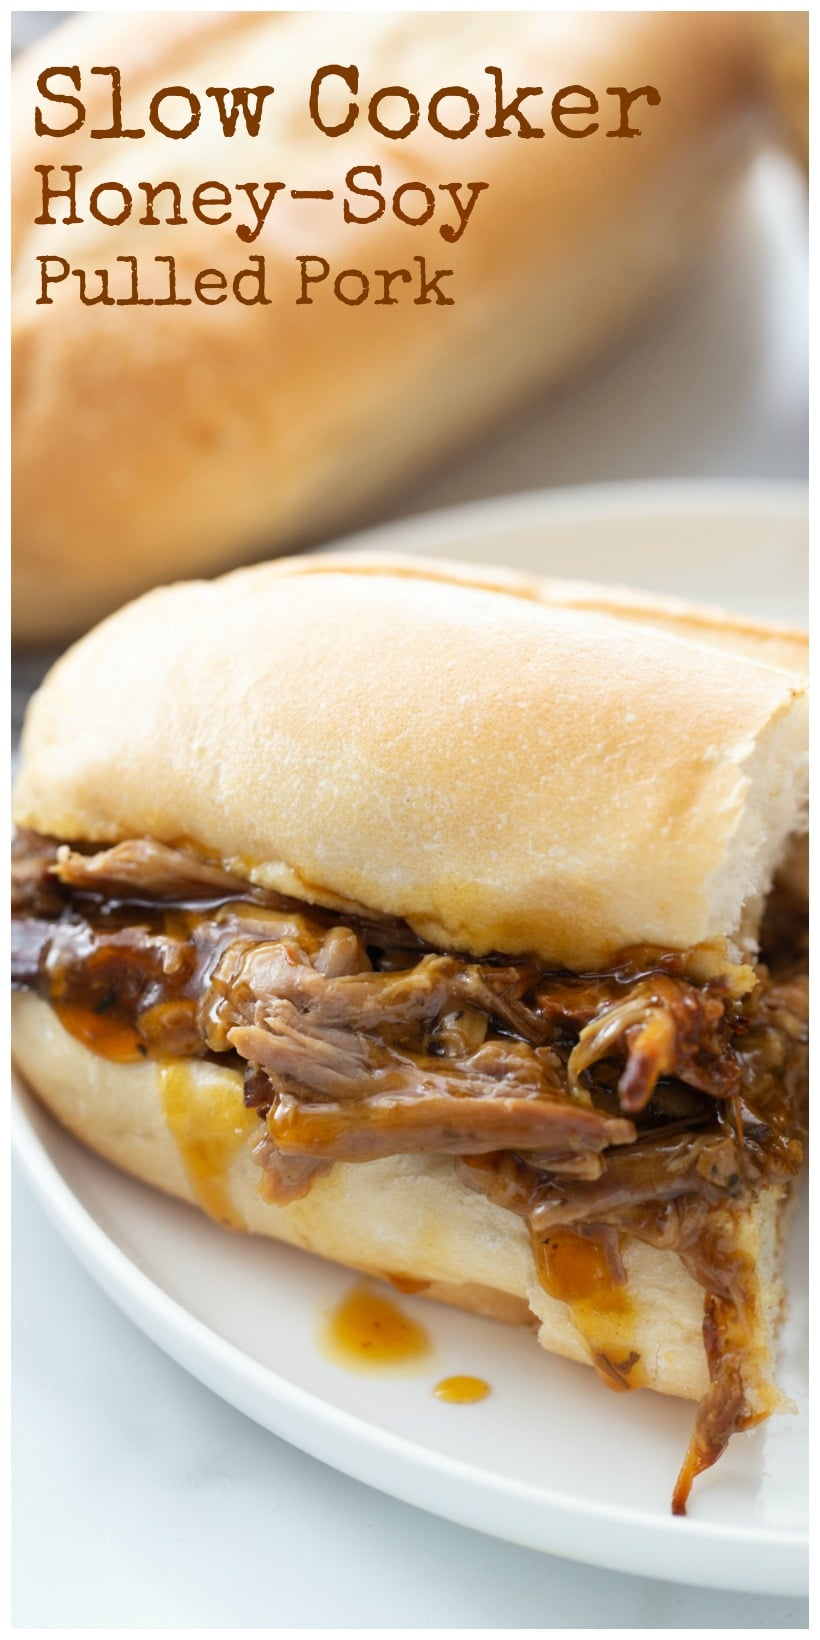 This Slow Cooker Honey-Soy Pulled Pork yields high returns for minimal effort. The pork is slow cooked in a mixture of sweet, salty and tangy ingredients until it pulls apart effortlessly. via @cmpollak1